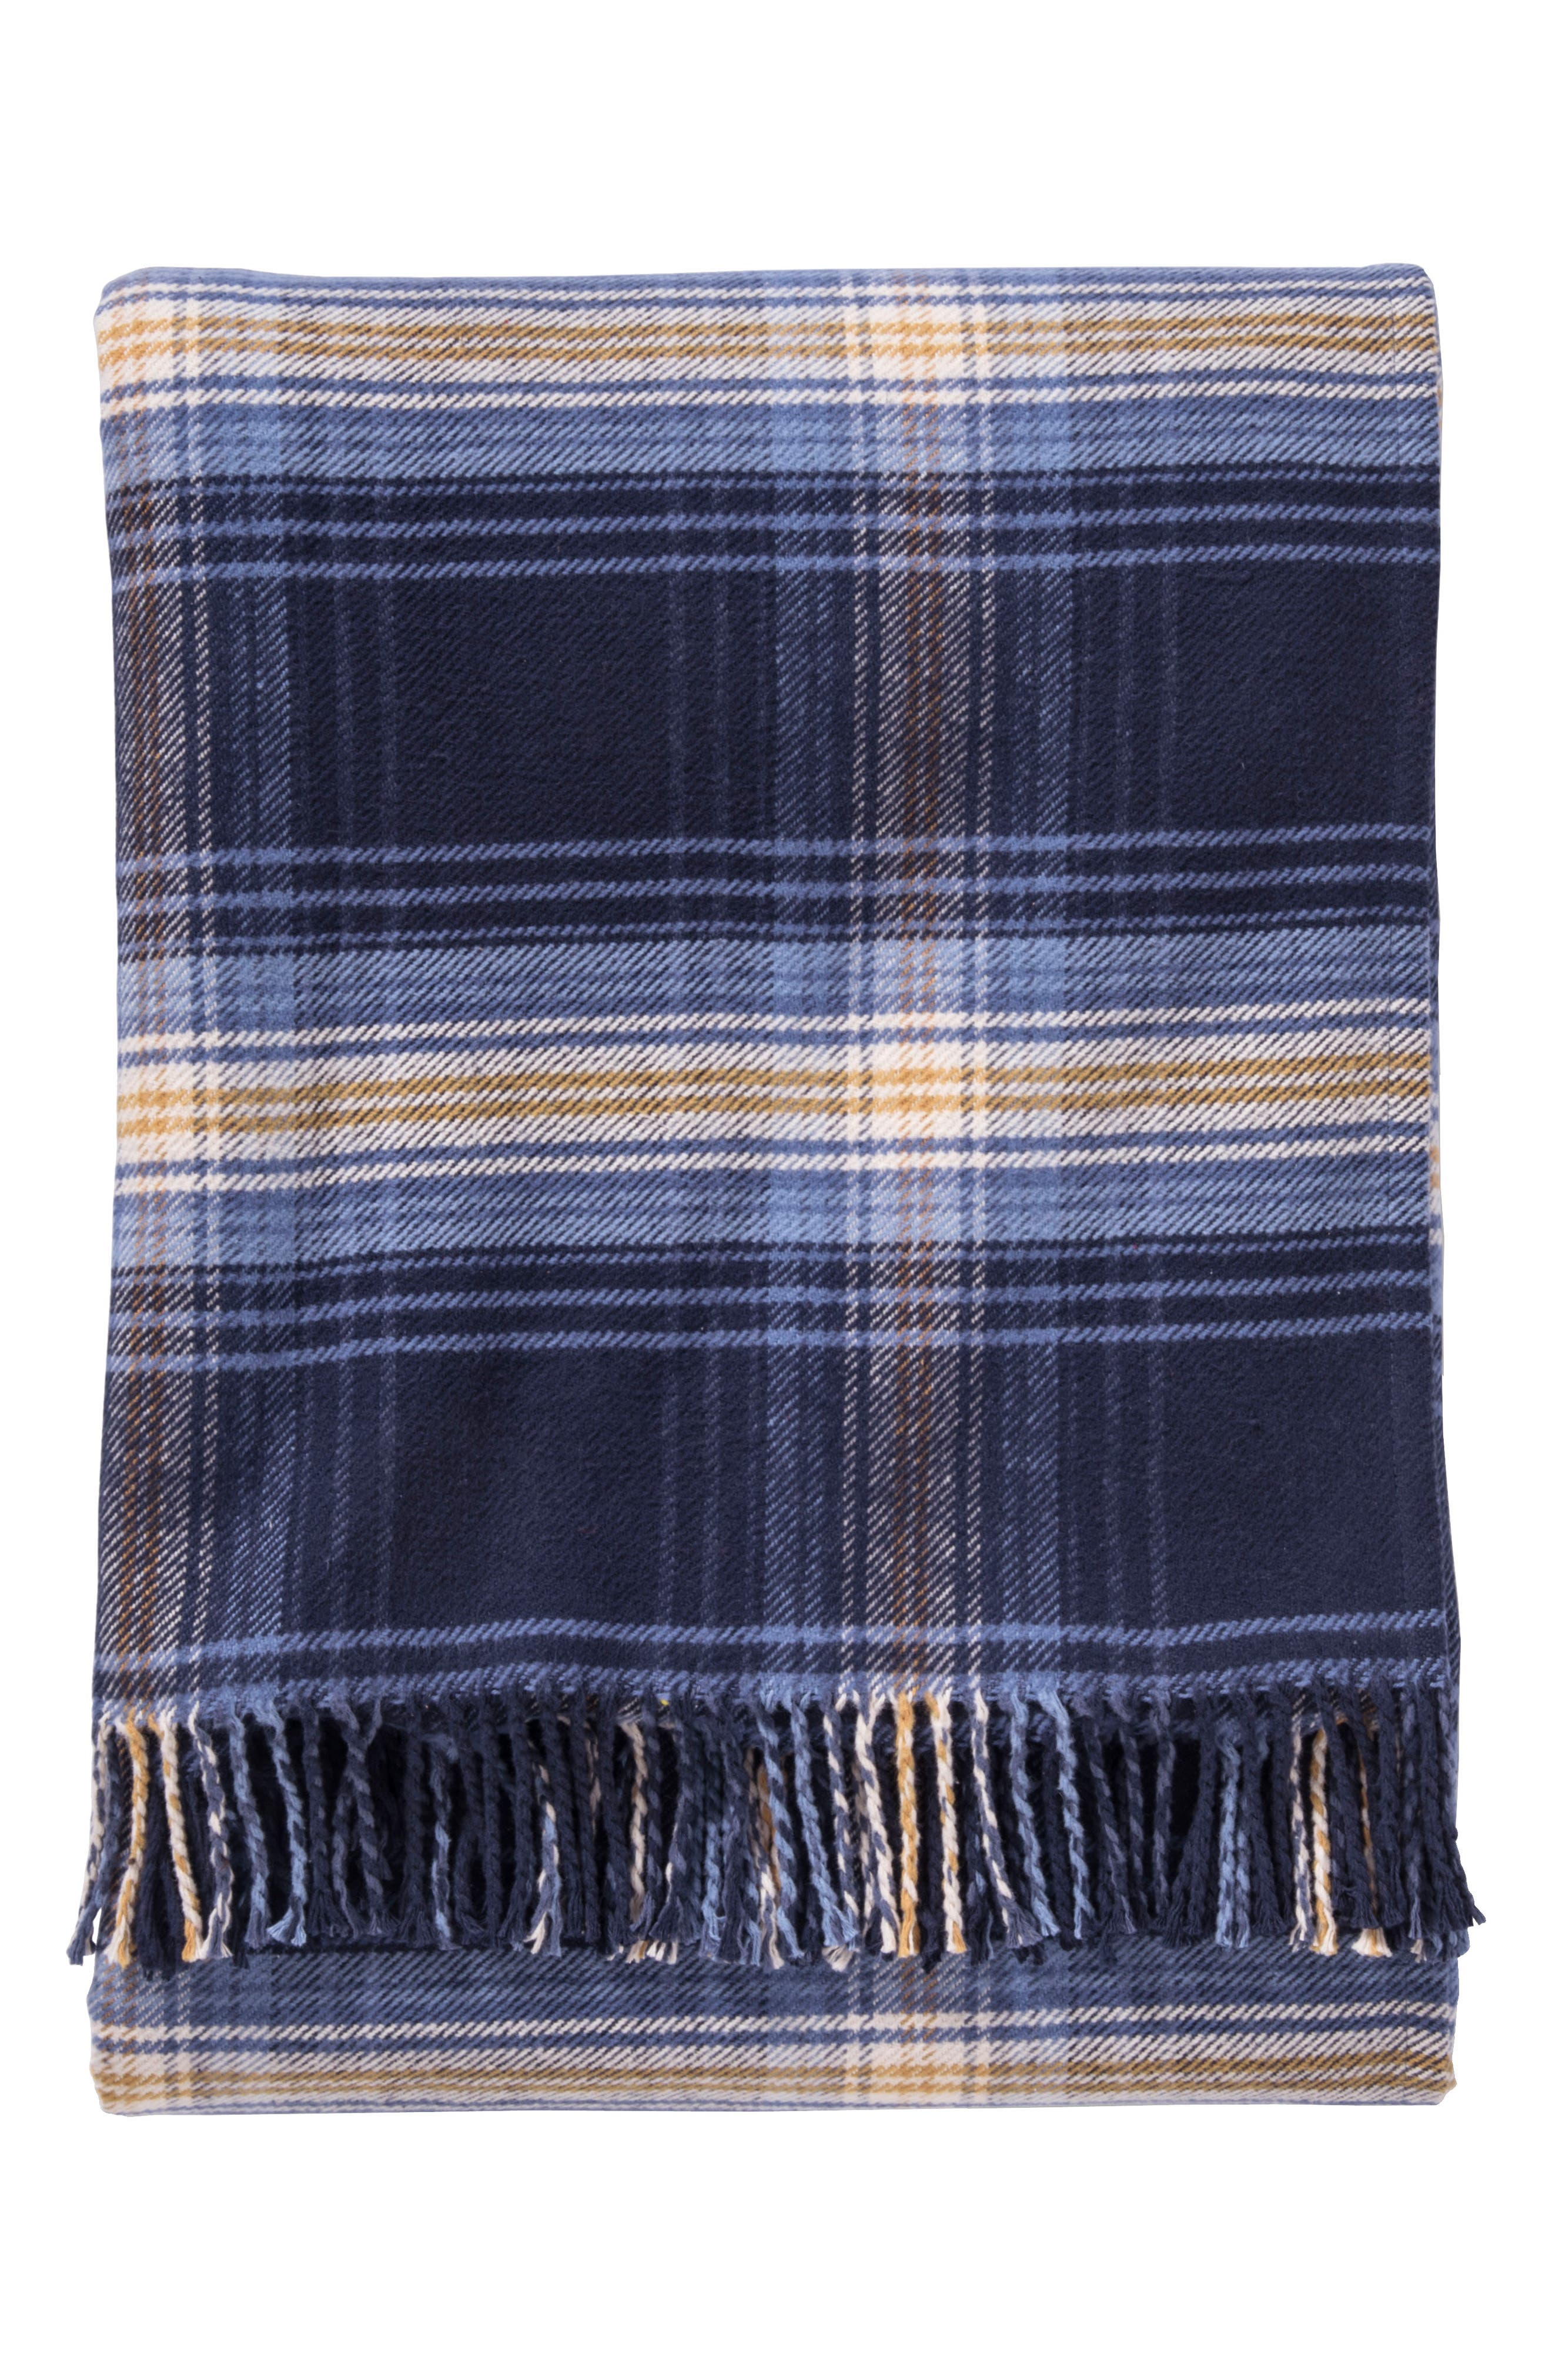 Ombre Plaid Throw,                         Main,                         color, Blue And Gold